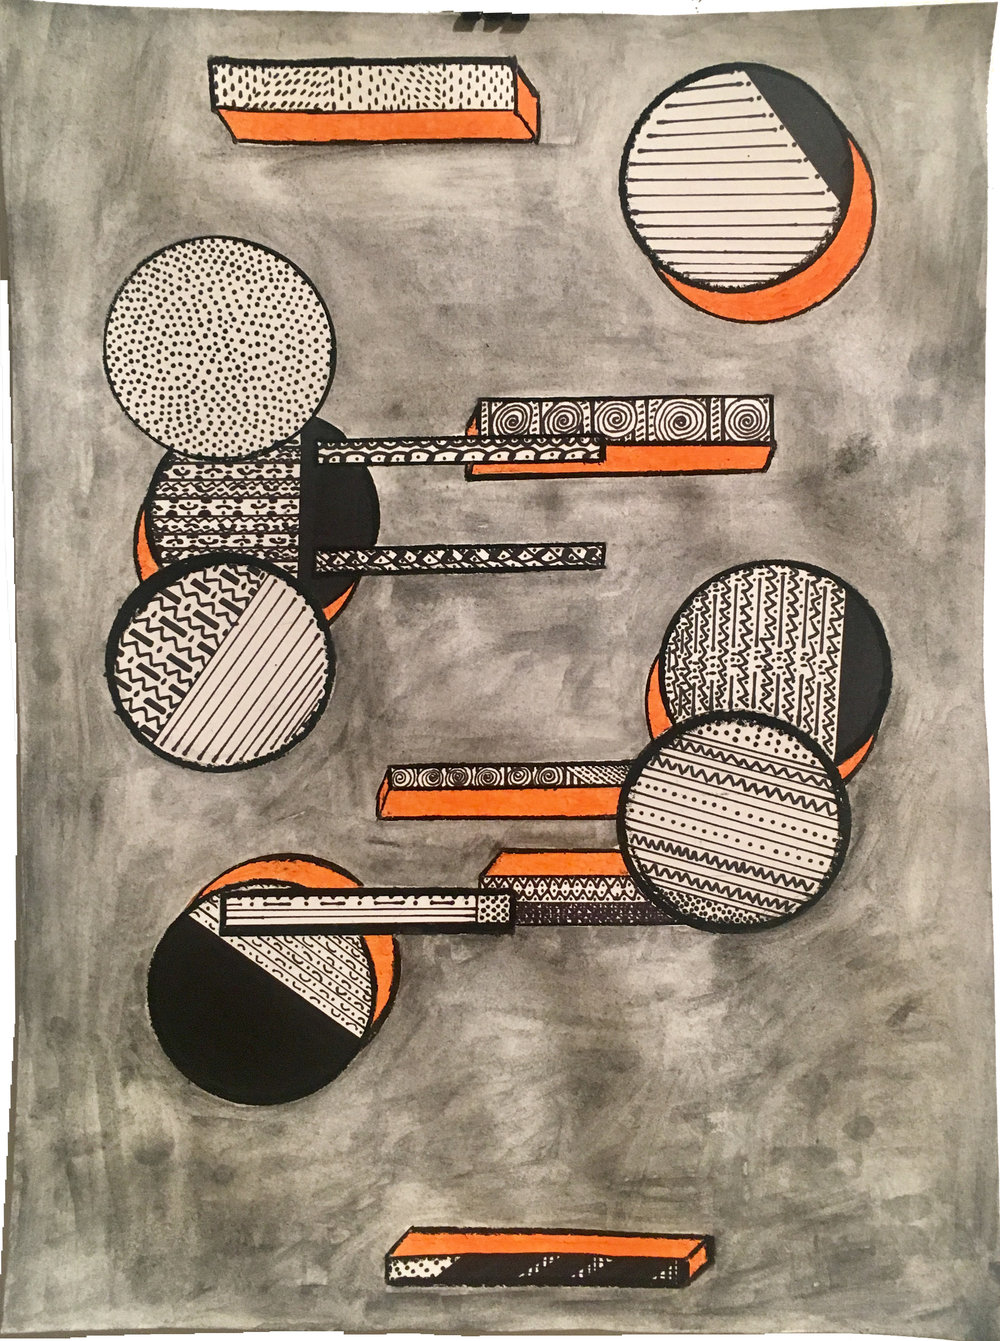 Glendalys Medina  Orange Laces  Graphite, marker and oil pastel on paper 14 x 17in